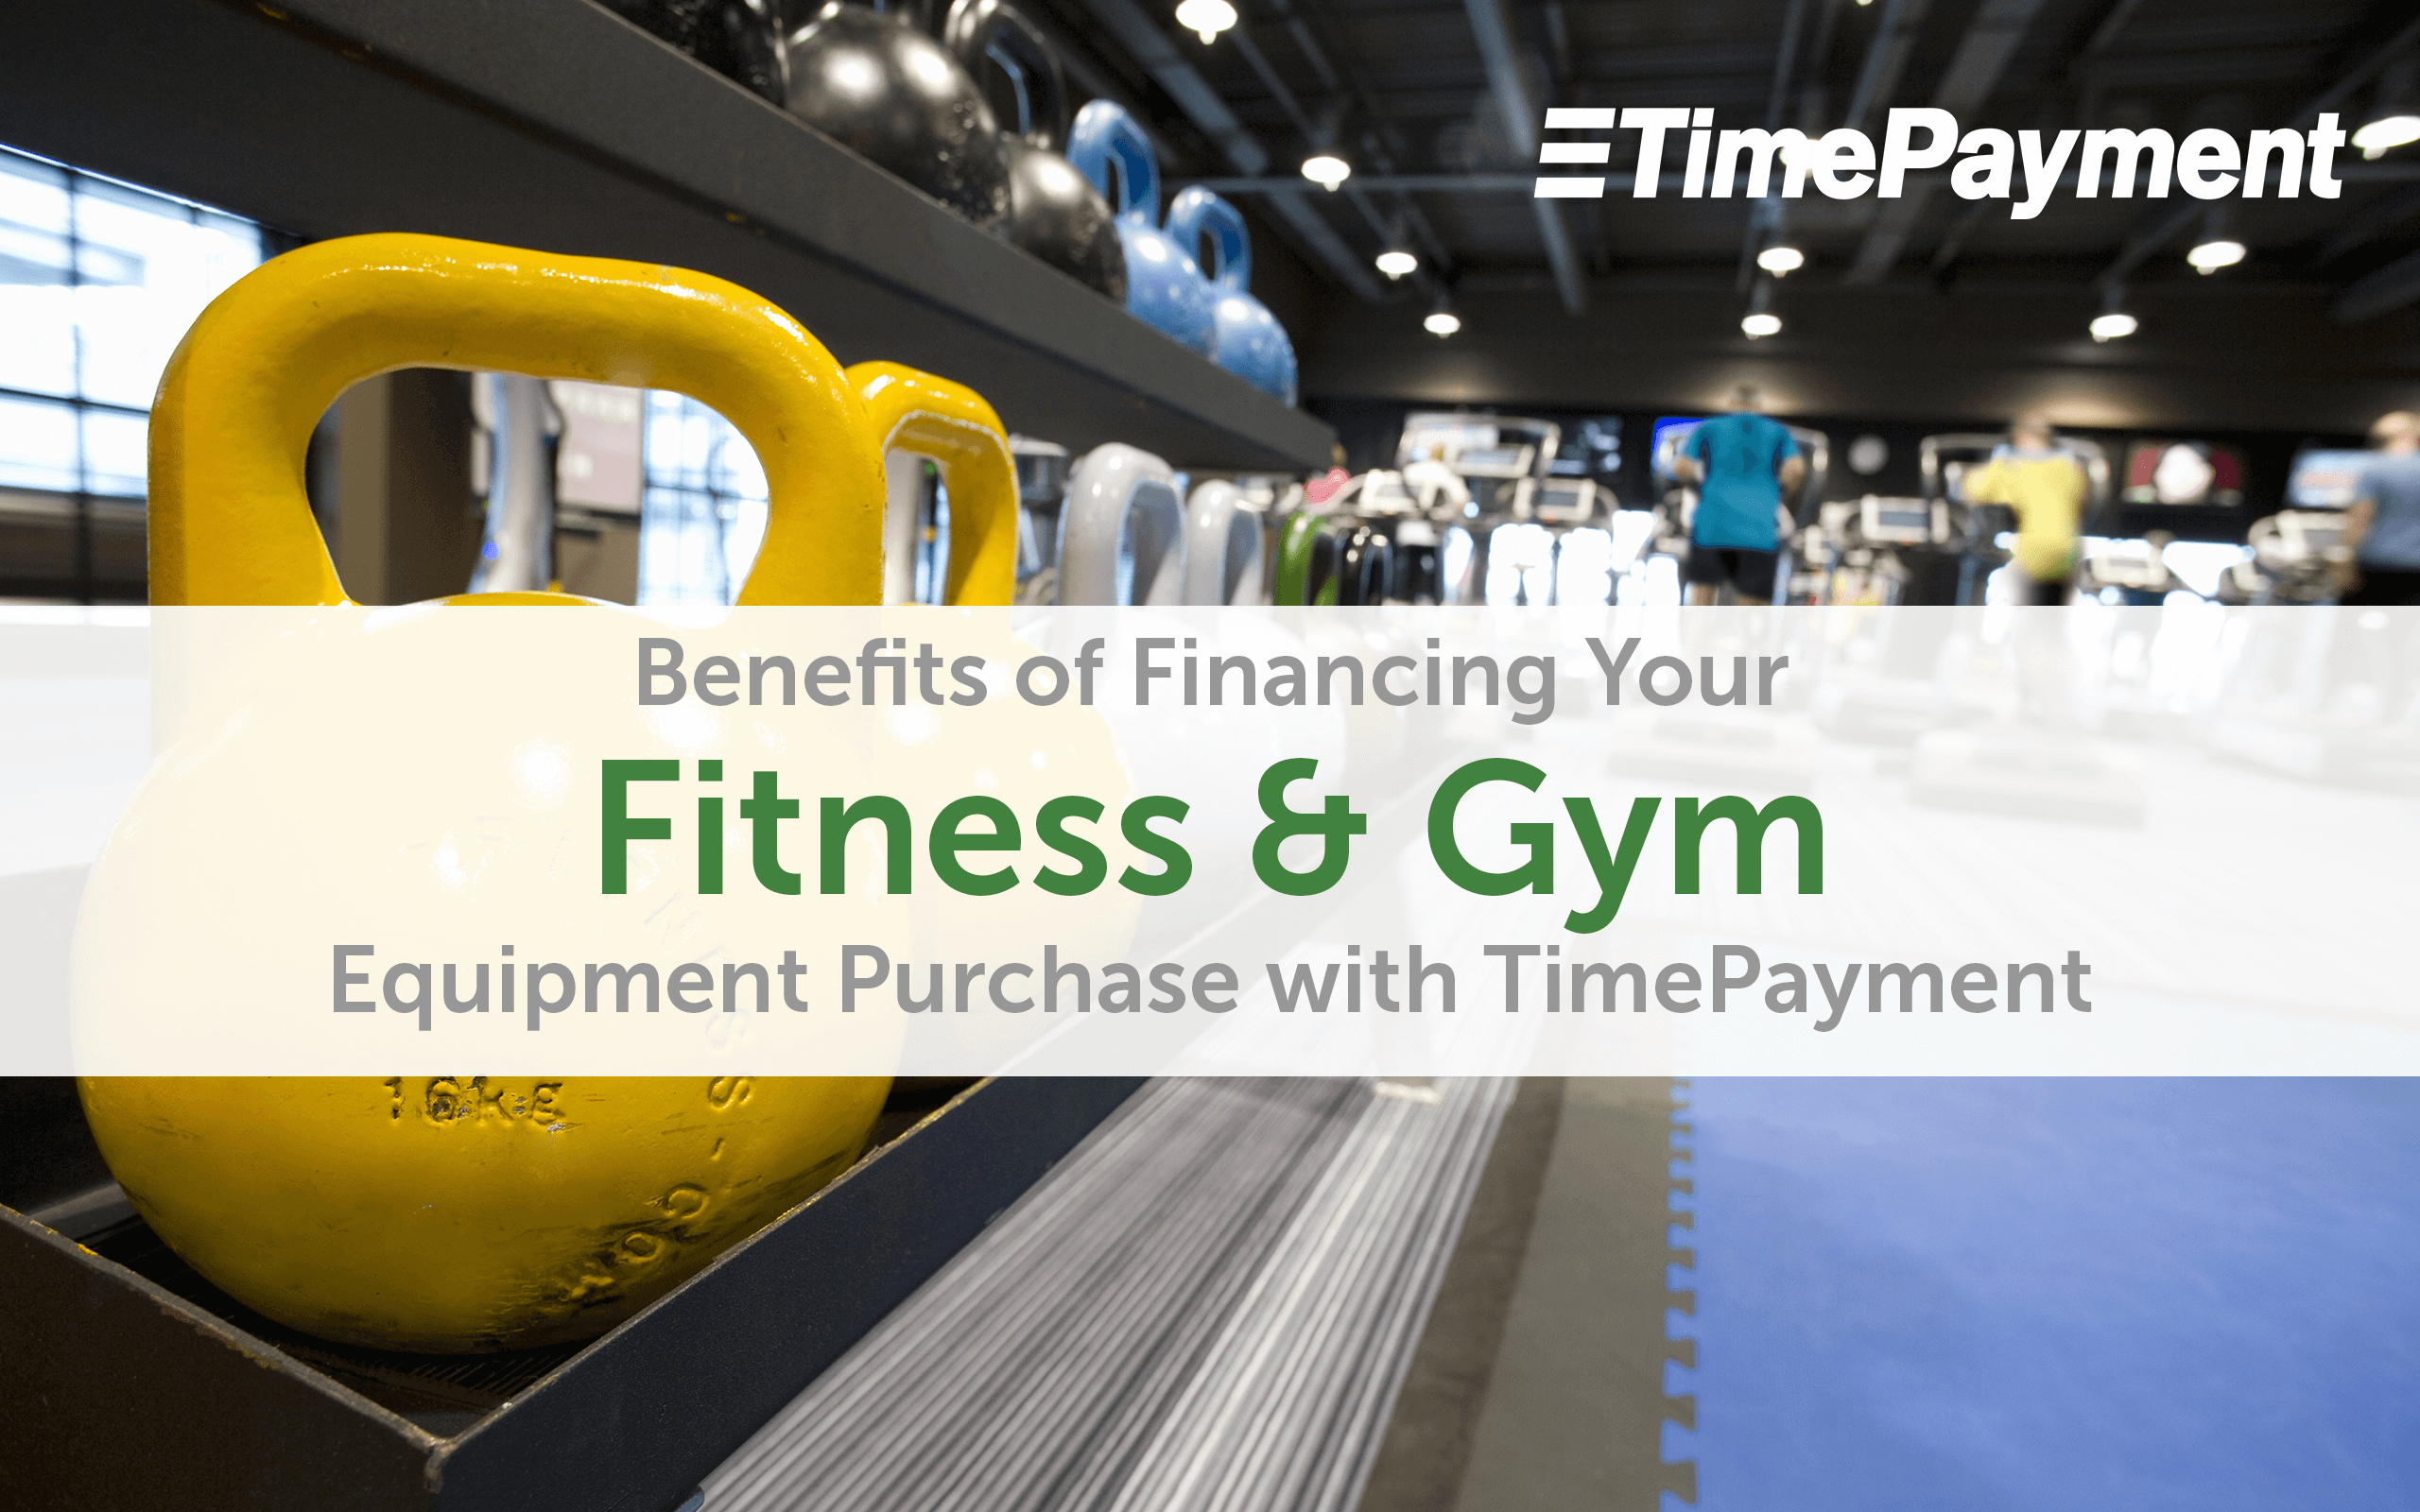 Benefits of Financing Your Fitness & Gym Equipment with TimePayment